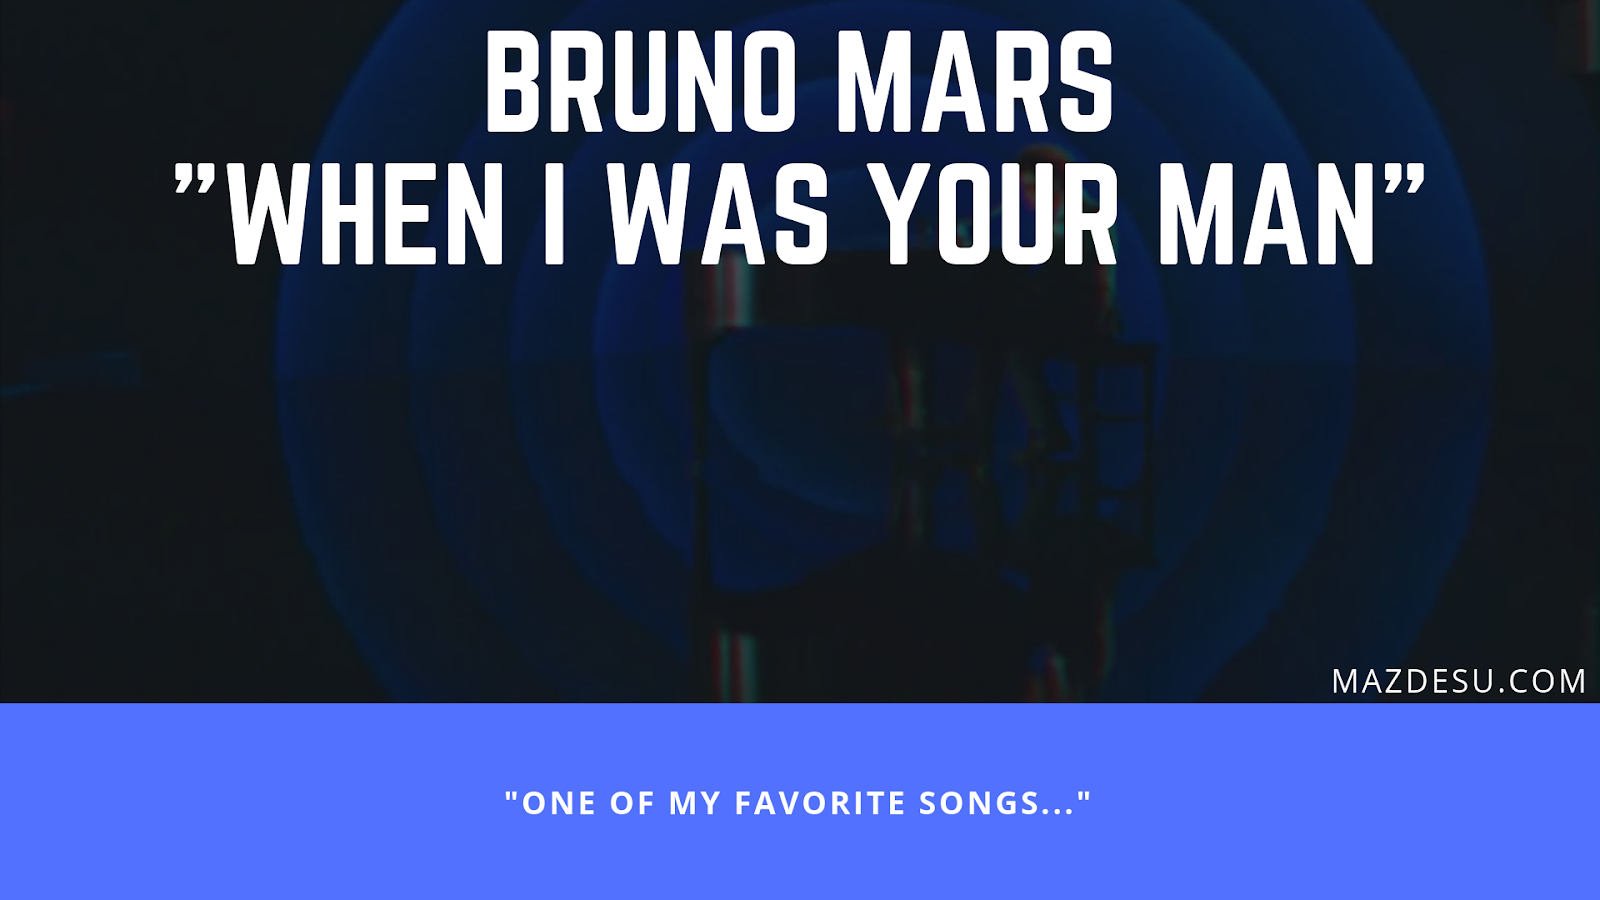 Lirik Lagu Bruno Mars – When I Was Your Man + Terjemahan Bahasa Indonesia